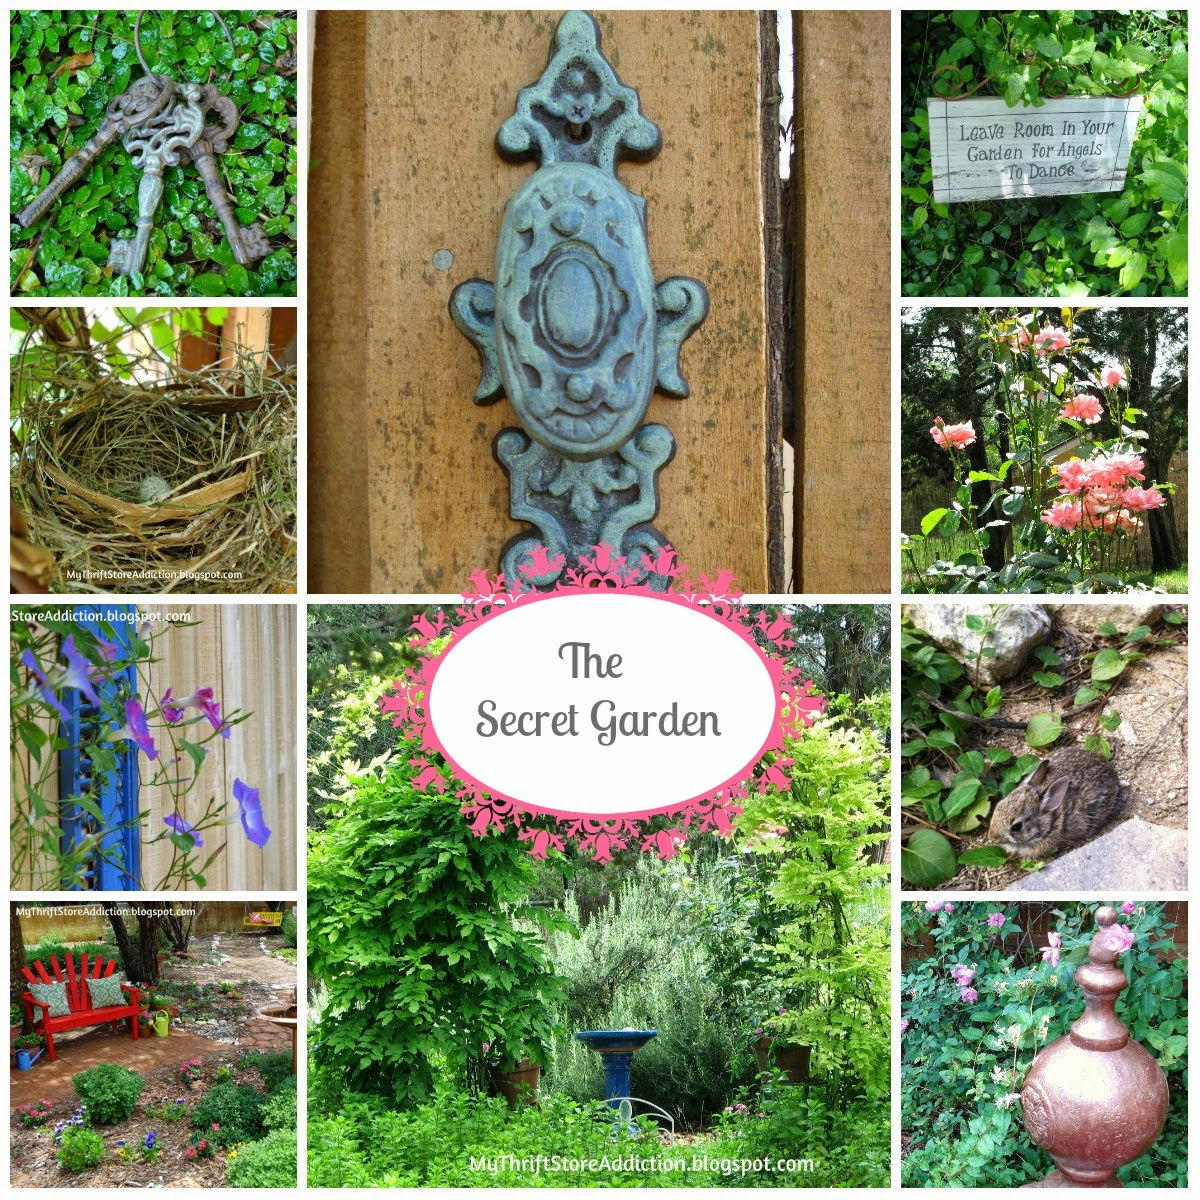 http://mythriftstoreaddiction.blogspot.com/2014/07/welcome-to-secret-garden.html